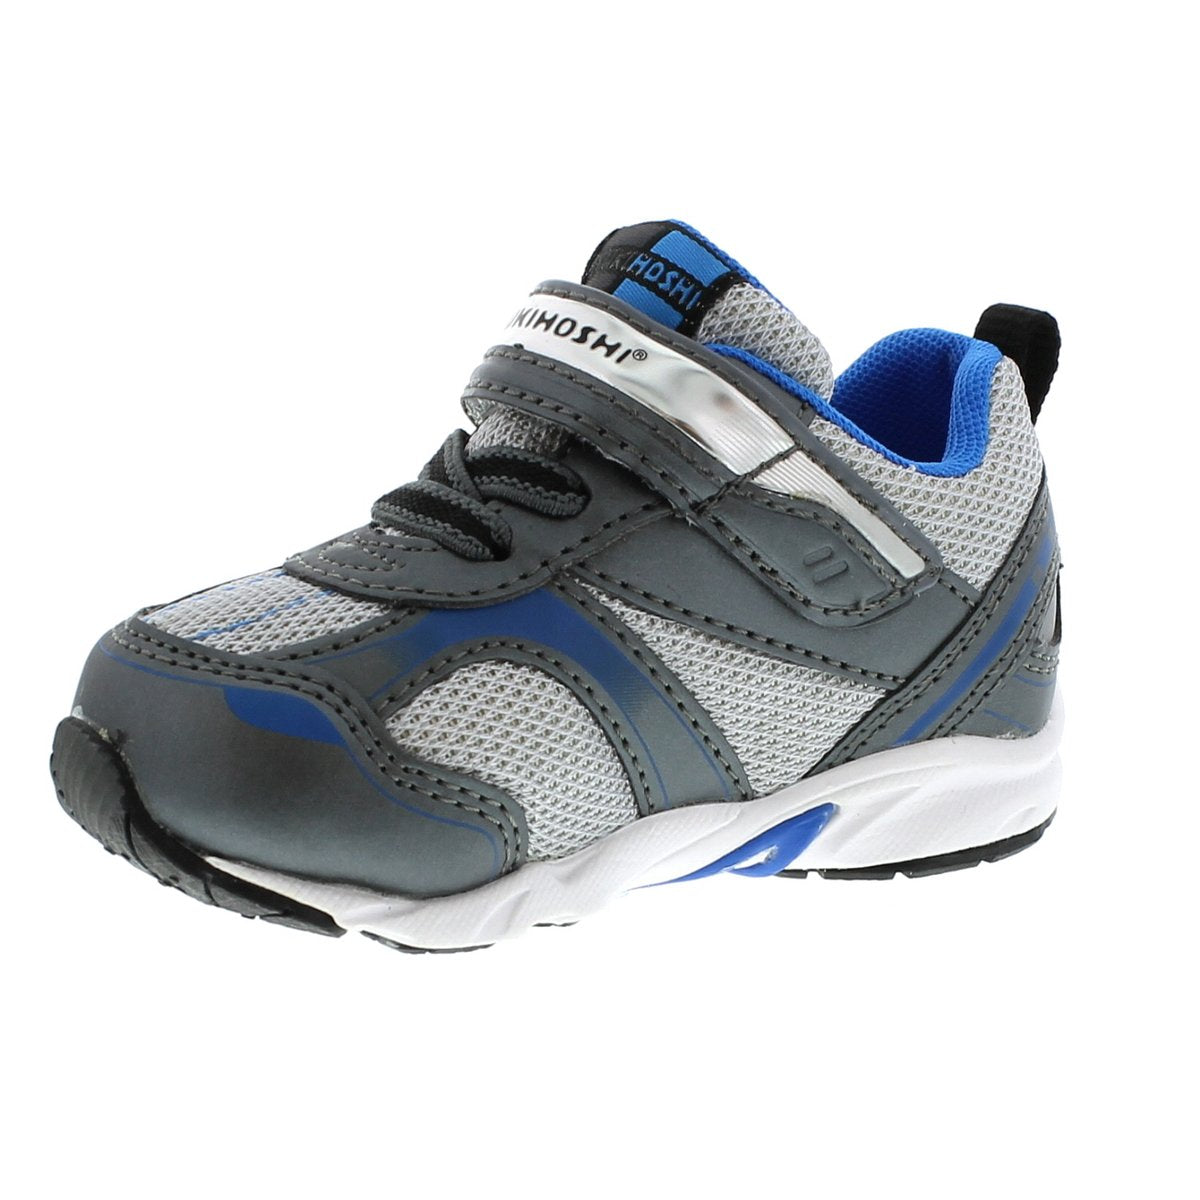 Baby Tsukihoshi Sport Sneaker in Graphite/Royal from the front view